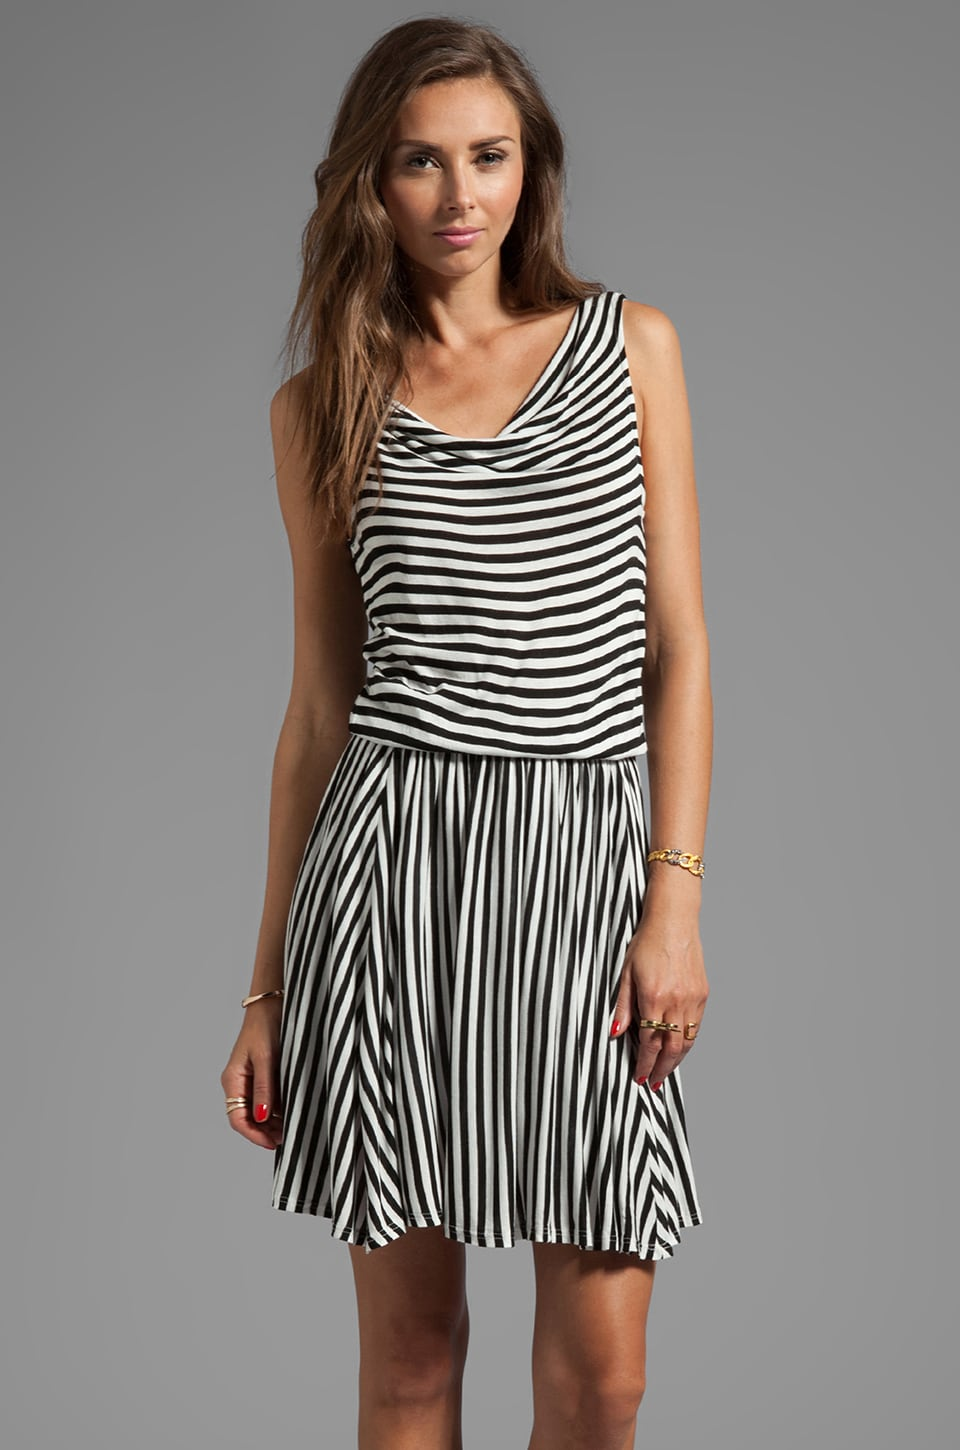 Ella Moss Gabi Stripe Dress in Black